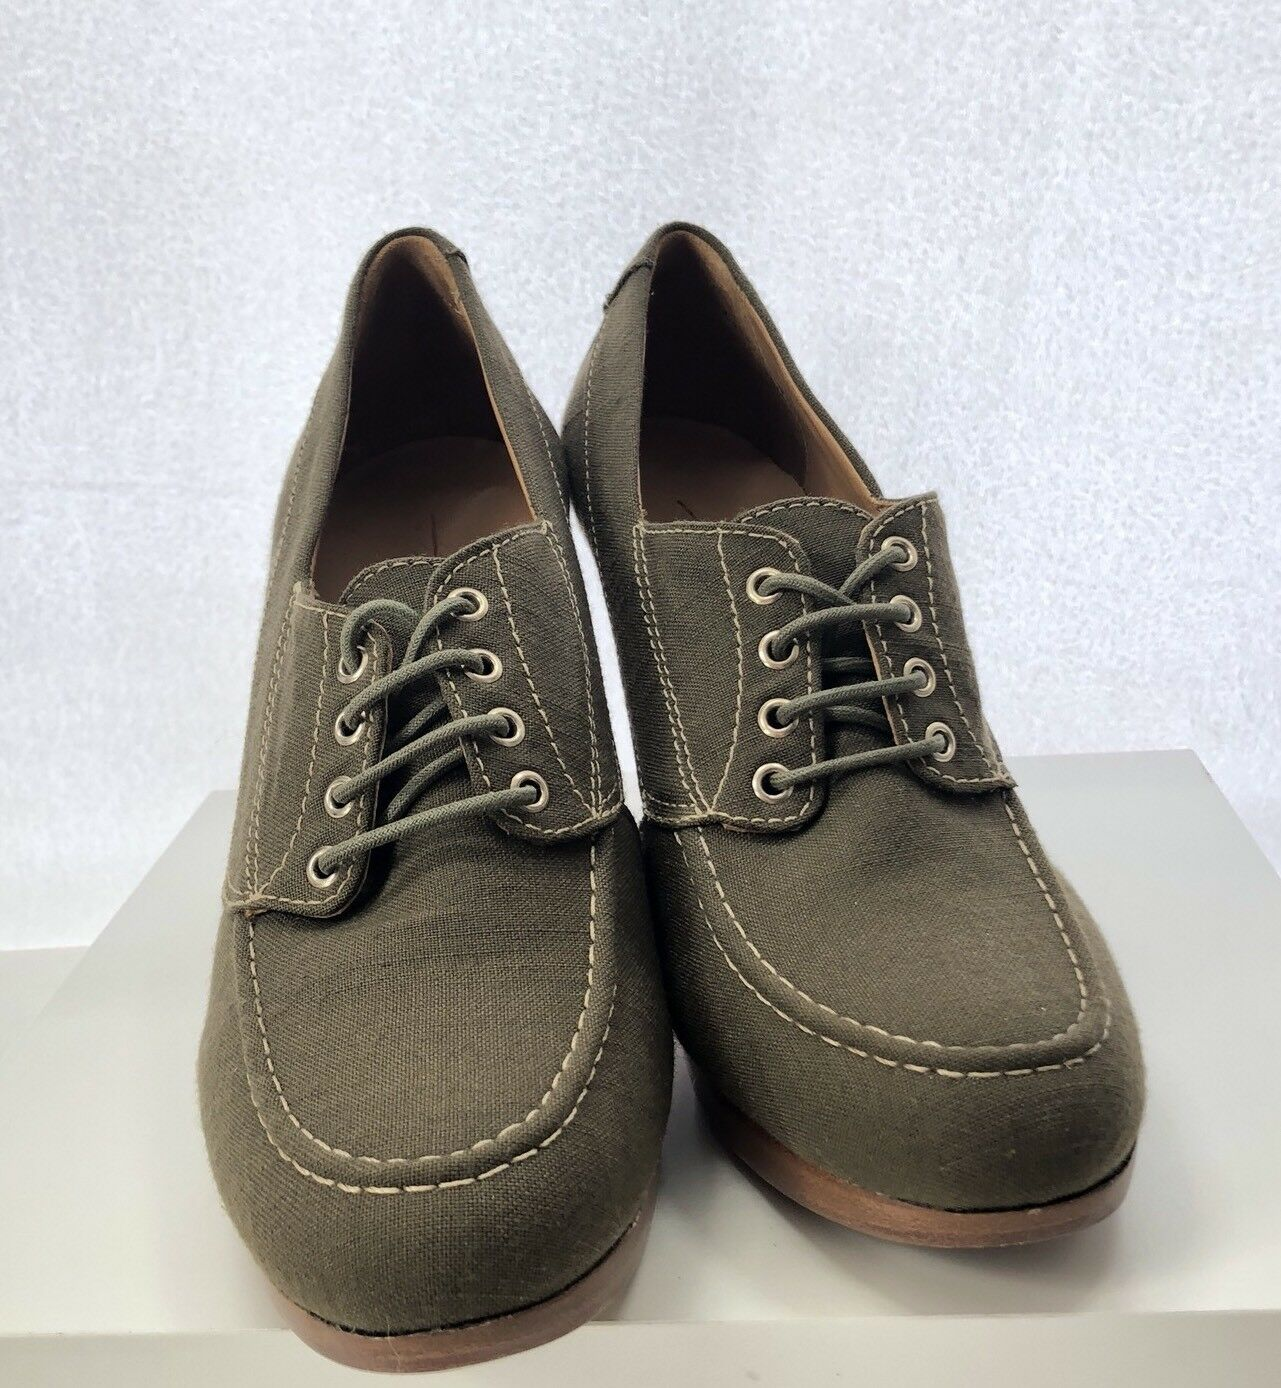 L.L. Bean Cursive Logo Oxfords 9.5 Damenschuhe Green Braun Linen 4